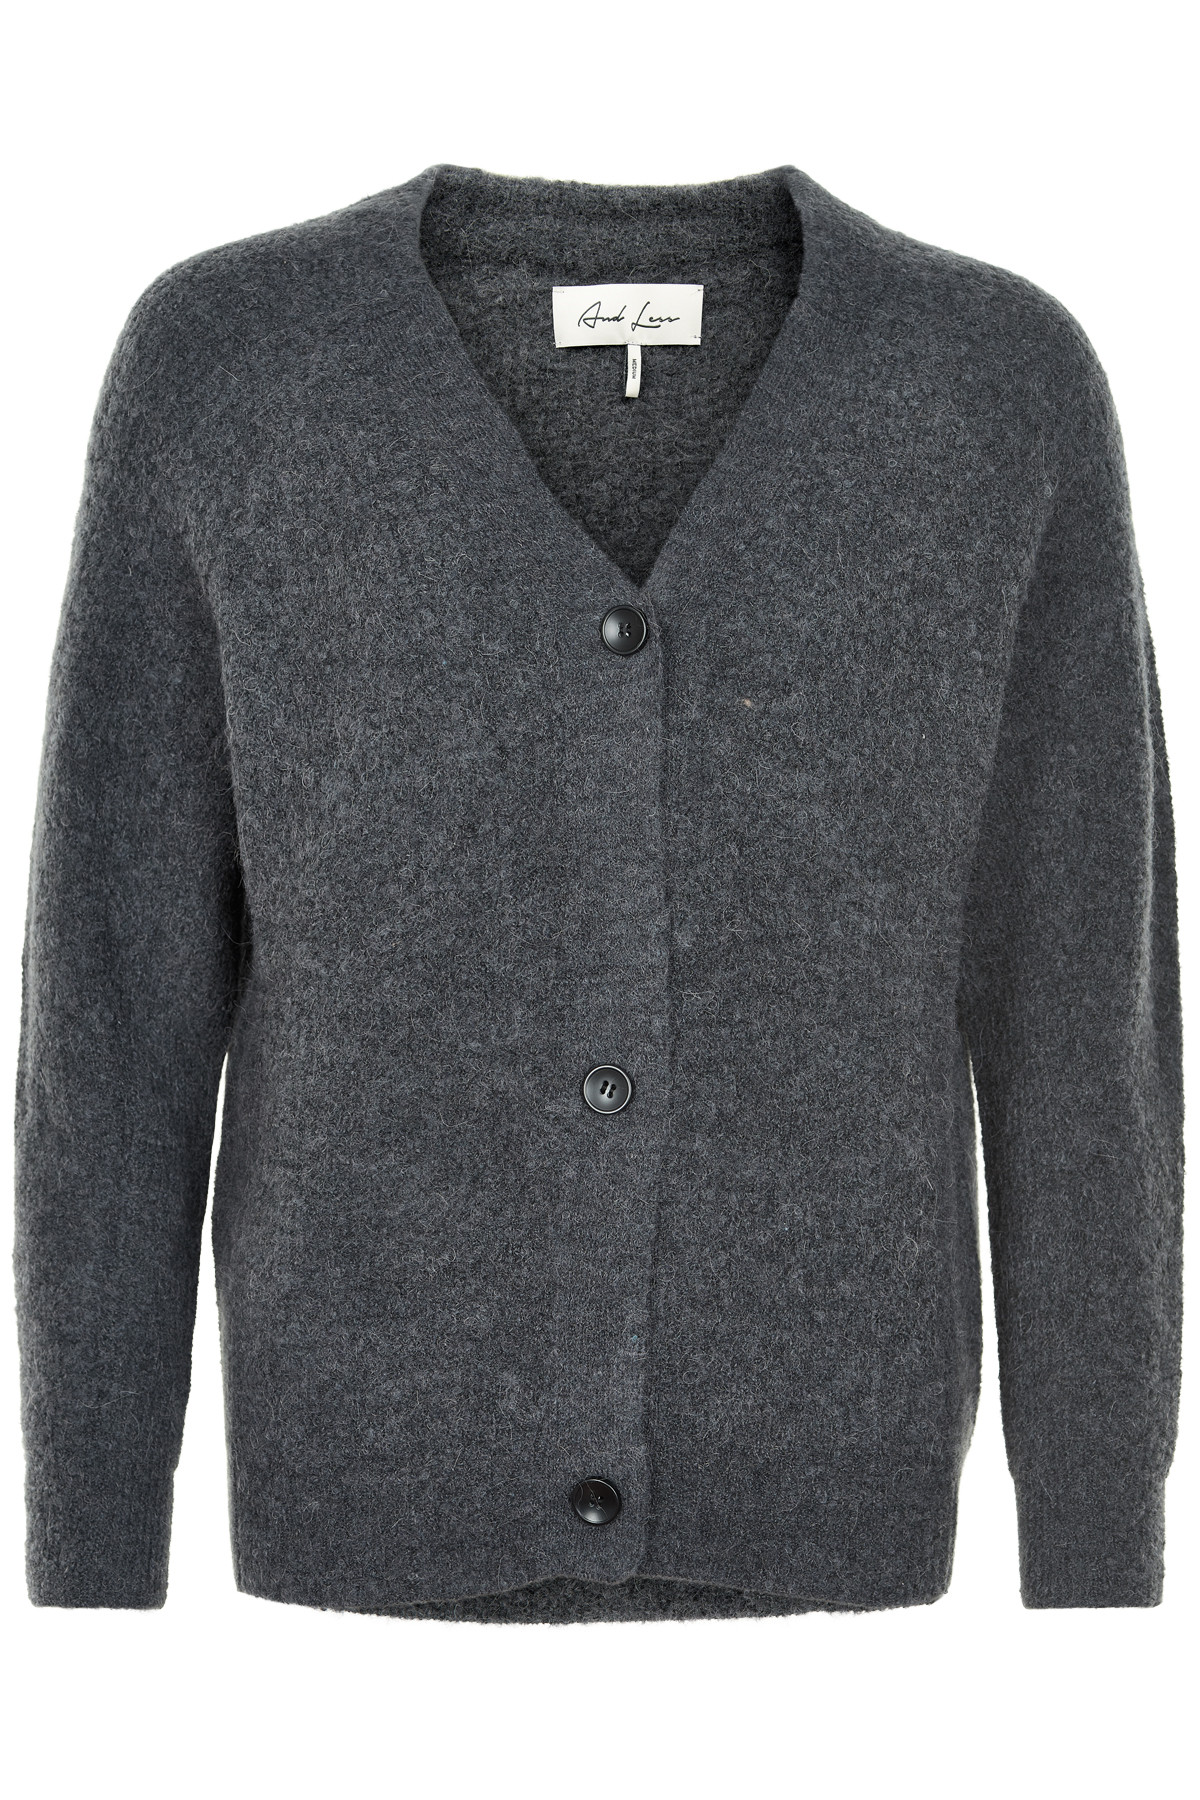 Image of   AND LESS ALENEN CARDIGAN 5519210 F (Folkstone, XL)